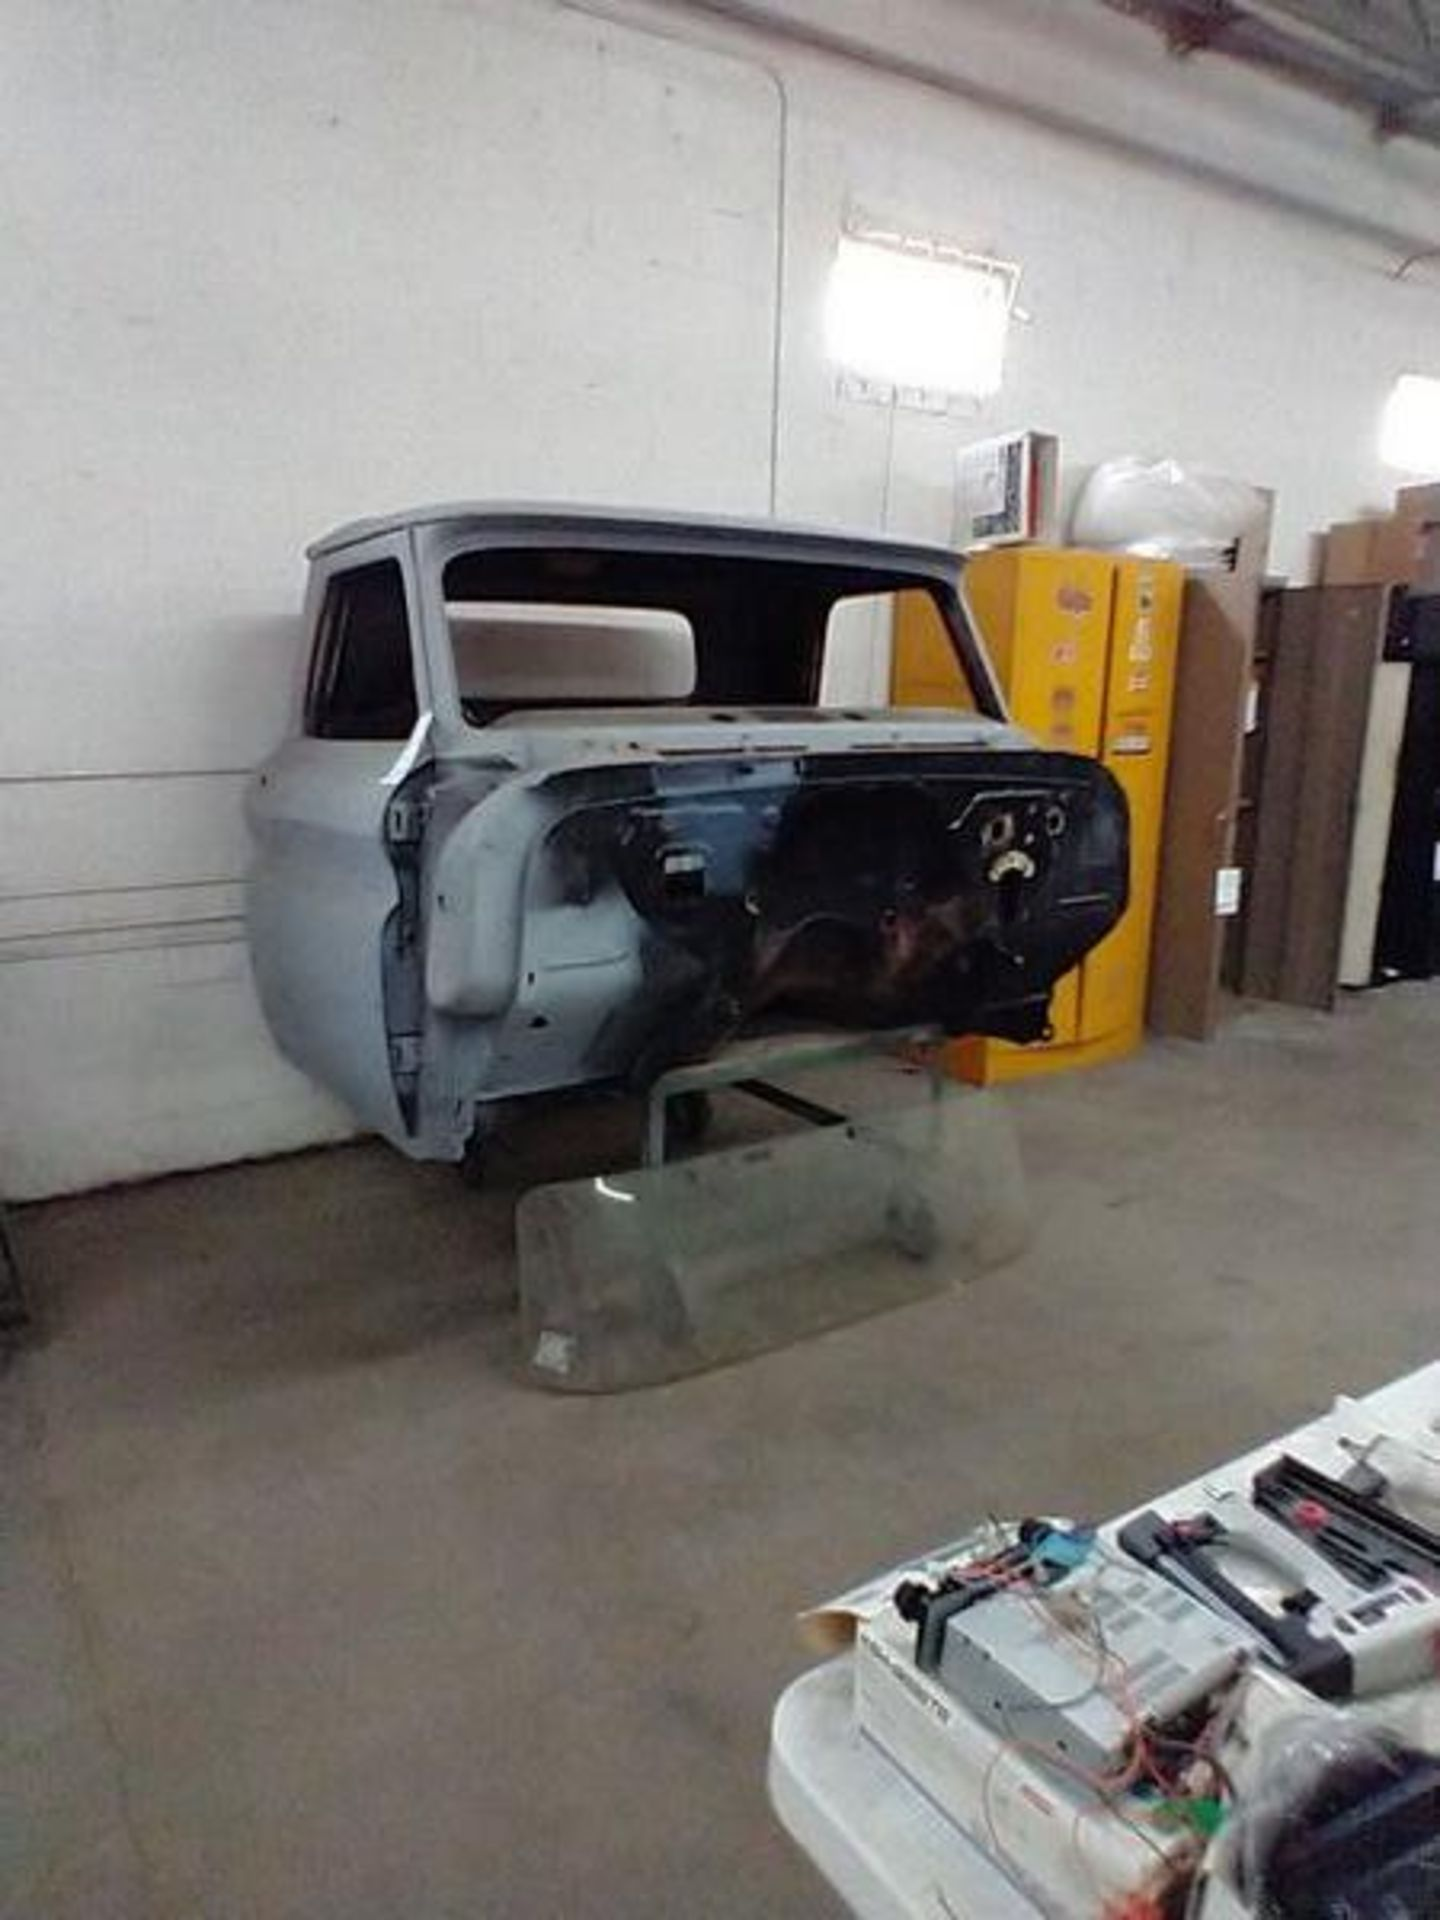 60'S CHEVY TRUCK CAB (WITH CART) - Image 3 of 6